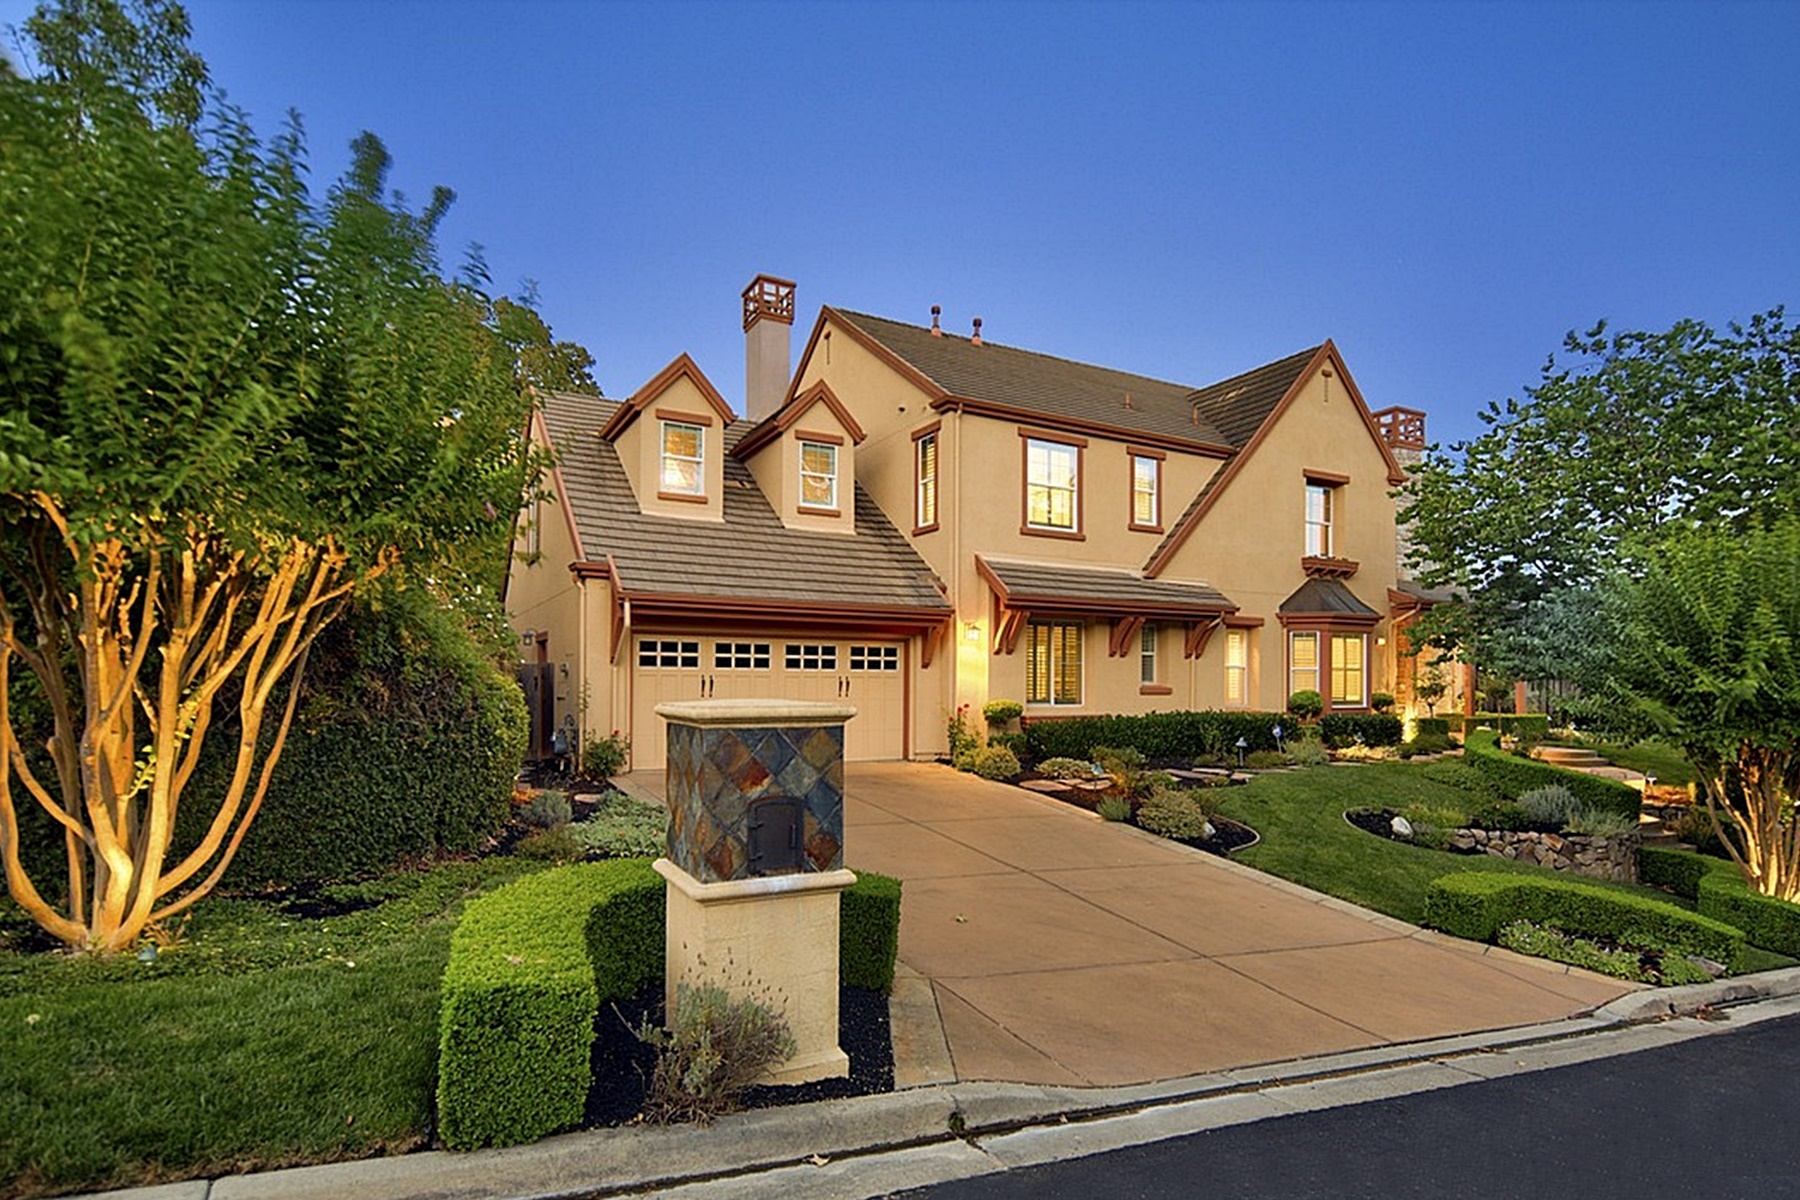 House for Sale at Stunning Stone Valley Oaks Home 4040 Stone Valley Oaks Drive Alamo, California 94507 United States